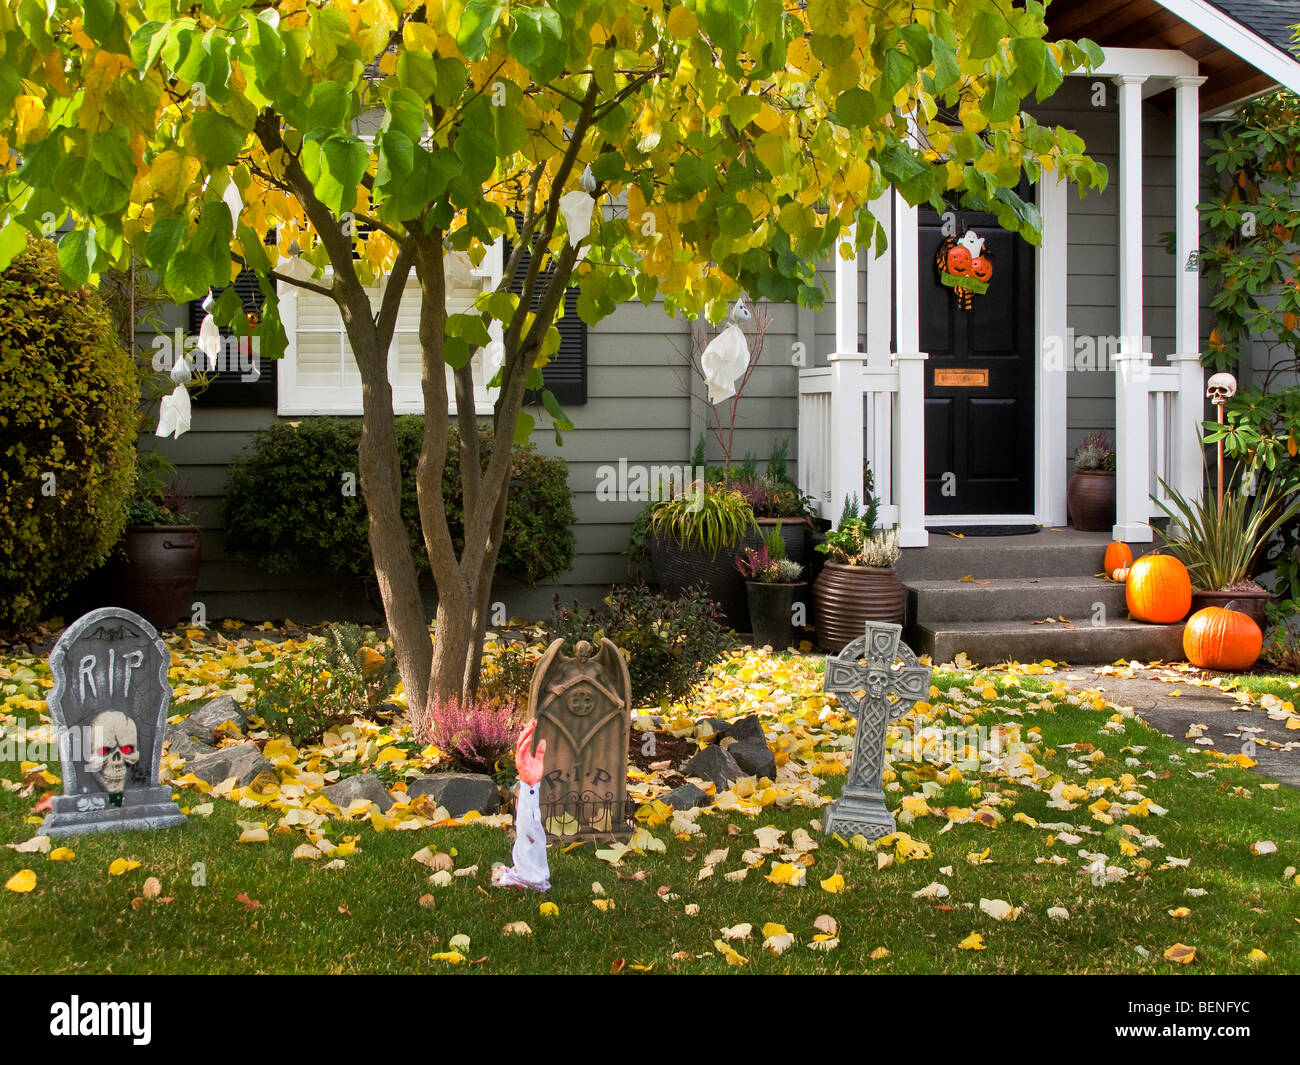 Cheap halloween yard decorations - Affordable Halloween Decorations Front Yard Of House Seattle Washington Stock Image With House Halloween Decorations